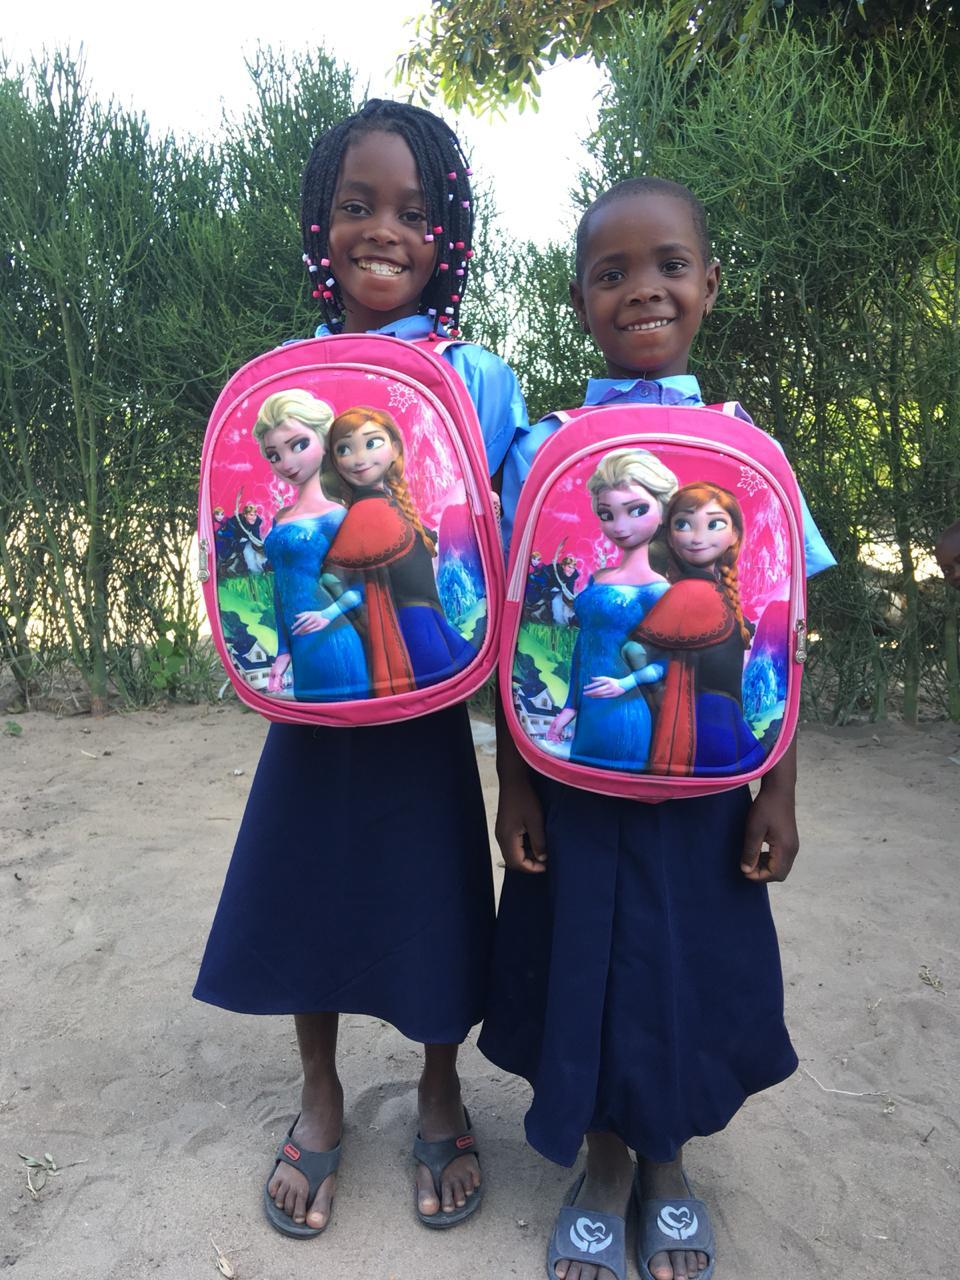 kurandza-girls-first-day-of-school-13.jpeg